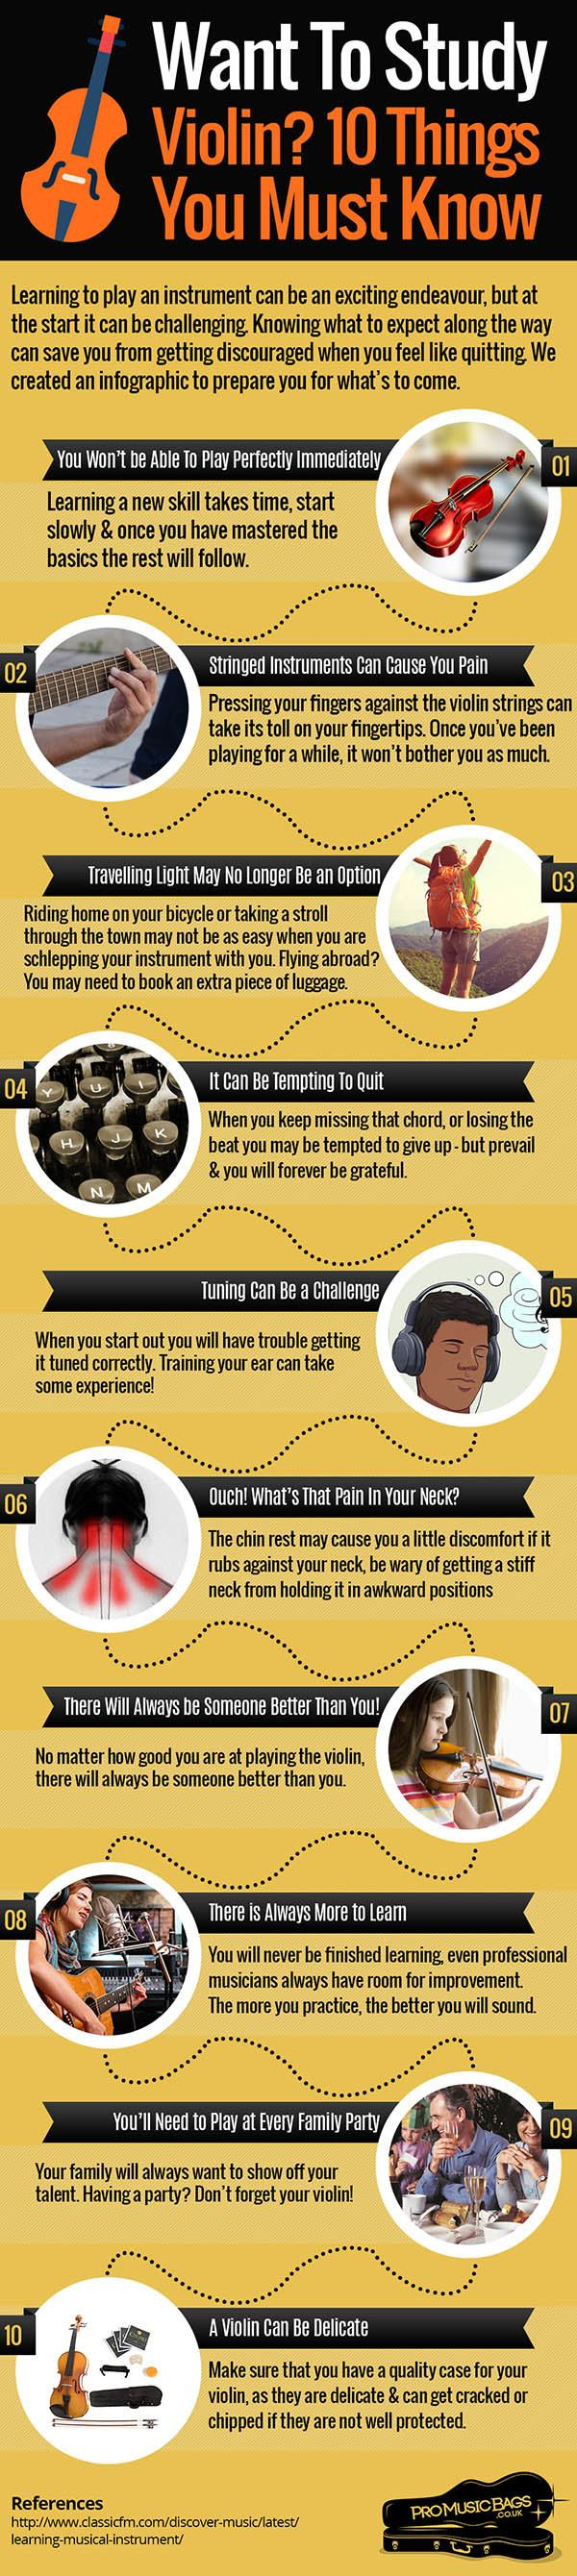 What You Should Know Before Studying Violin Infographic